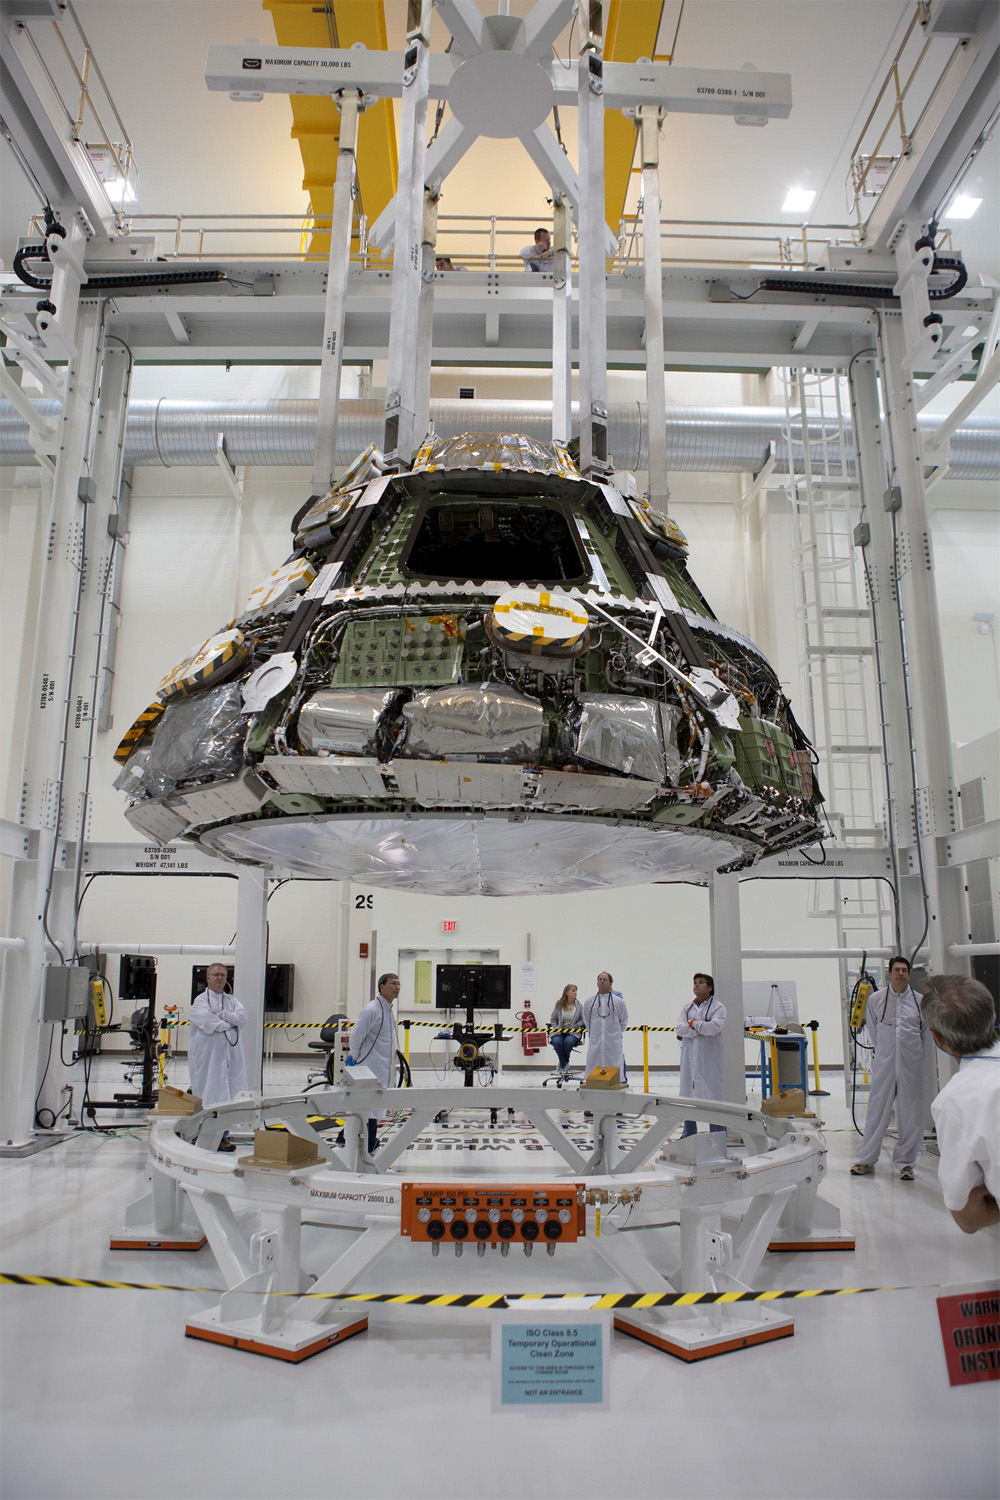 World's Largest Heat Shield Attached to NASA's Orion Crew Capsule for Crucial Fall 2014 Test Flight